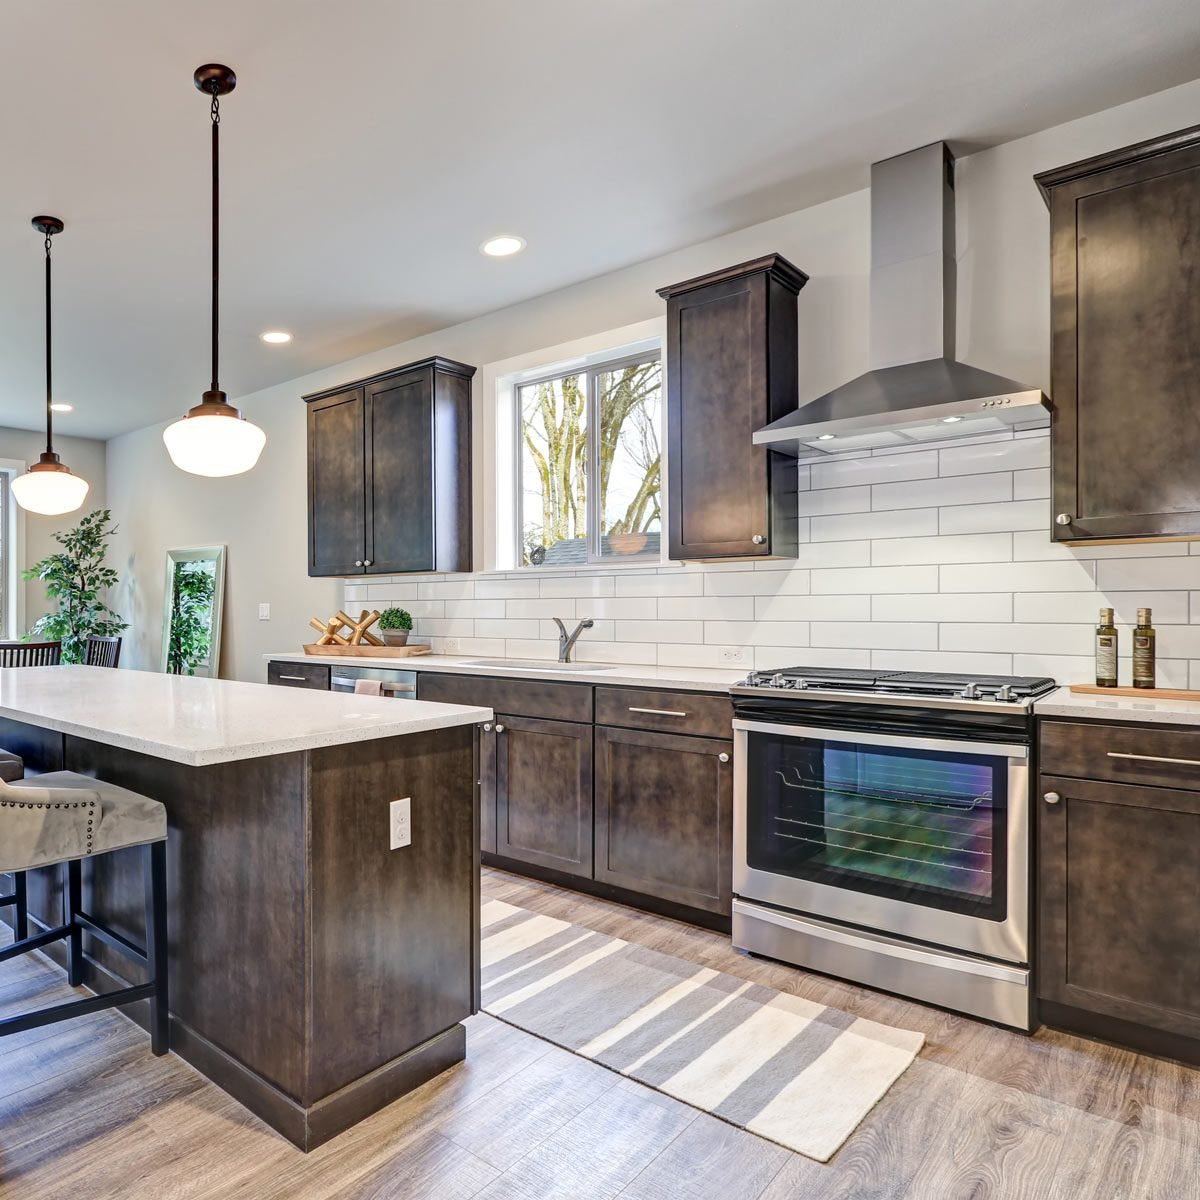 New-kitchen-boasts-dark-wood-cabinets-white-backsplash-subway-tile-and-over-sized-island-with-white-and-grey-quartz-counter-illuminated-by-pendant-lights